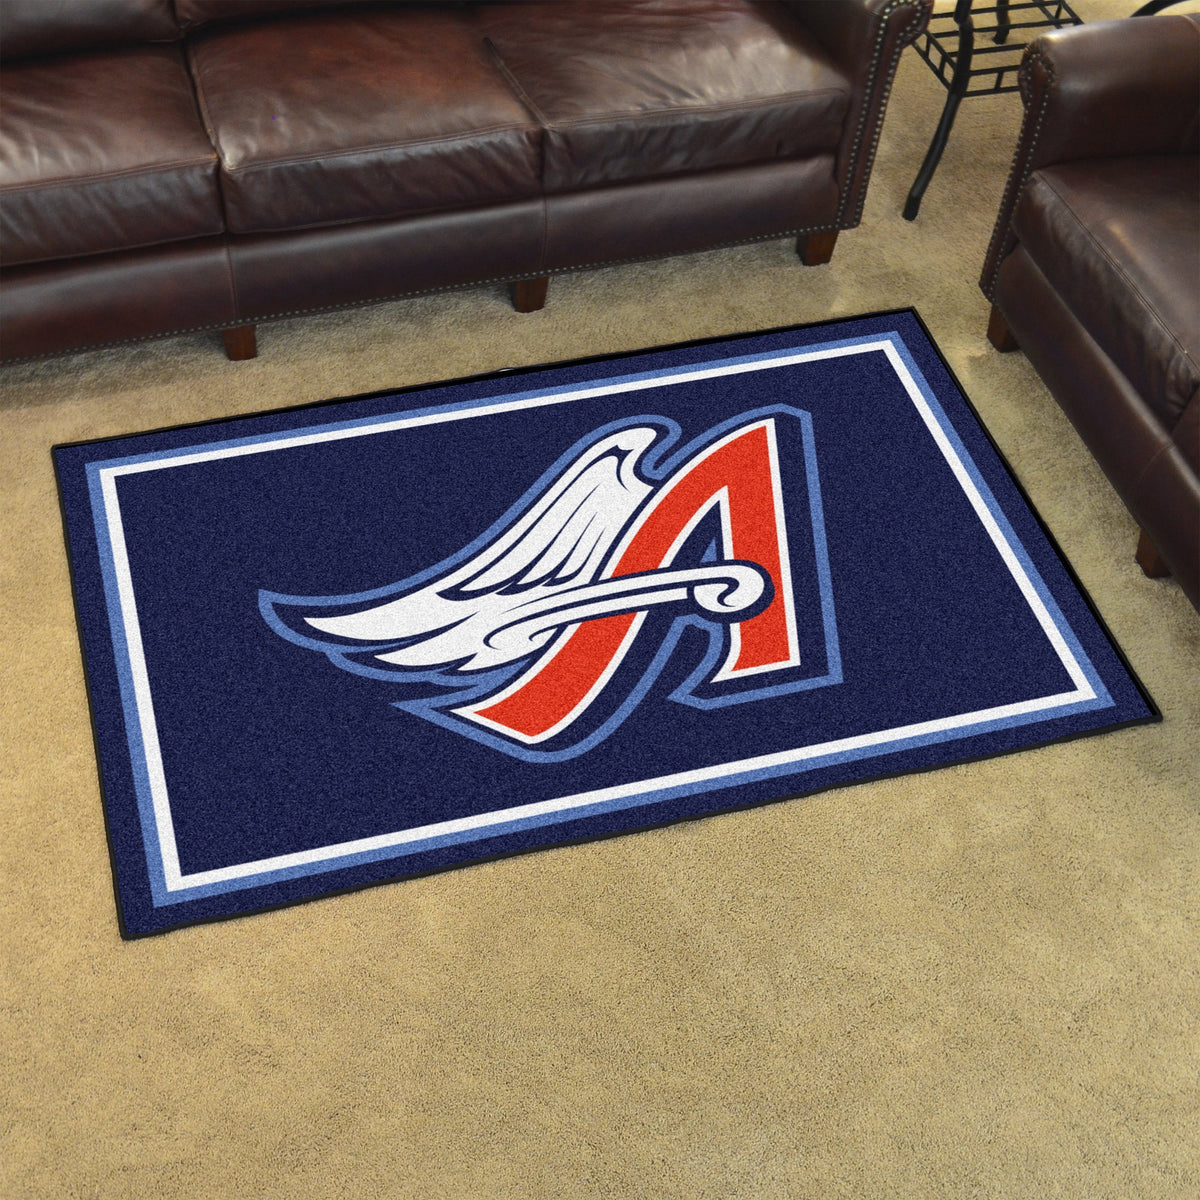 MLB Retro - 4' x 6' Rug MLB Retro Mats, Plush Rugs, 4x6 Rug, MLB, Home Fan Mats Anaheim Angels